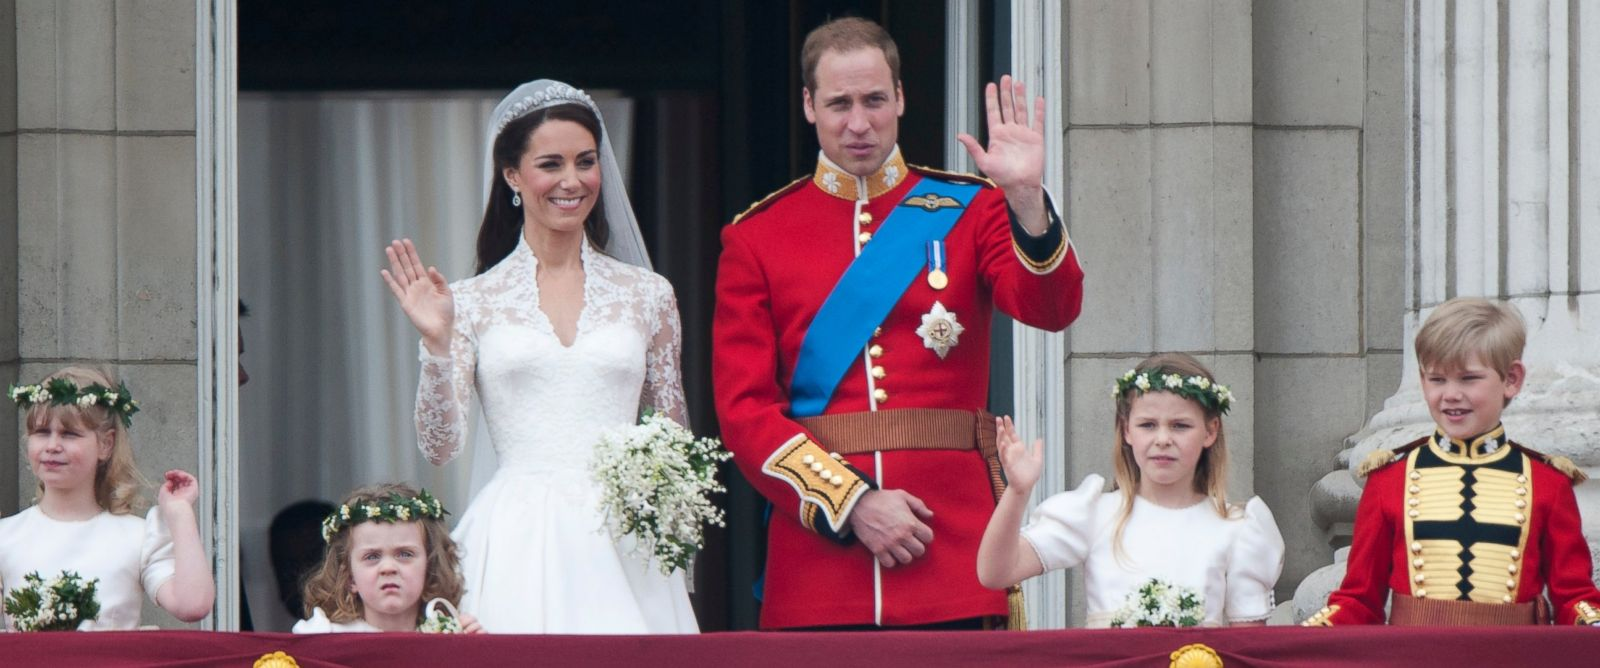 Prince William And Kate's 5th Wedding Anniversary: 5